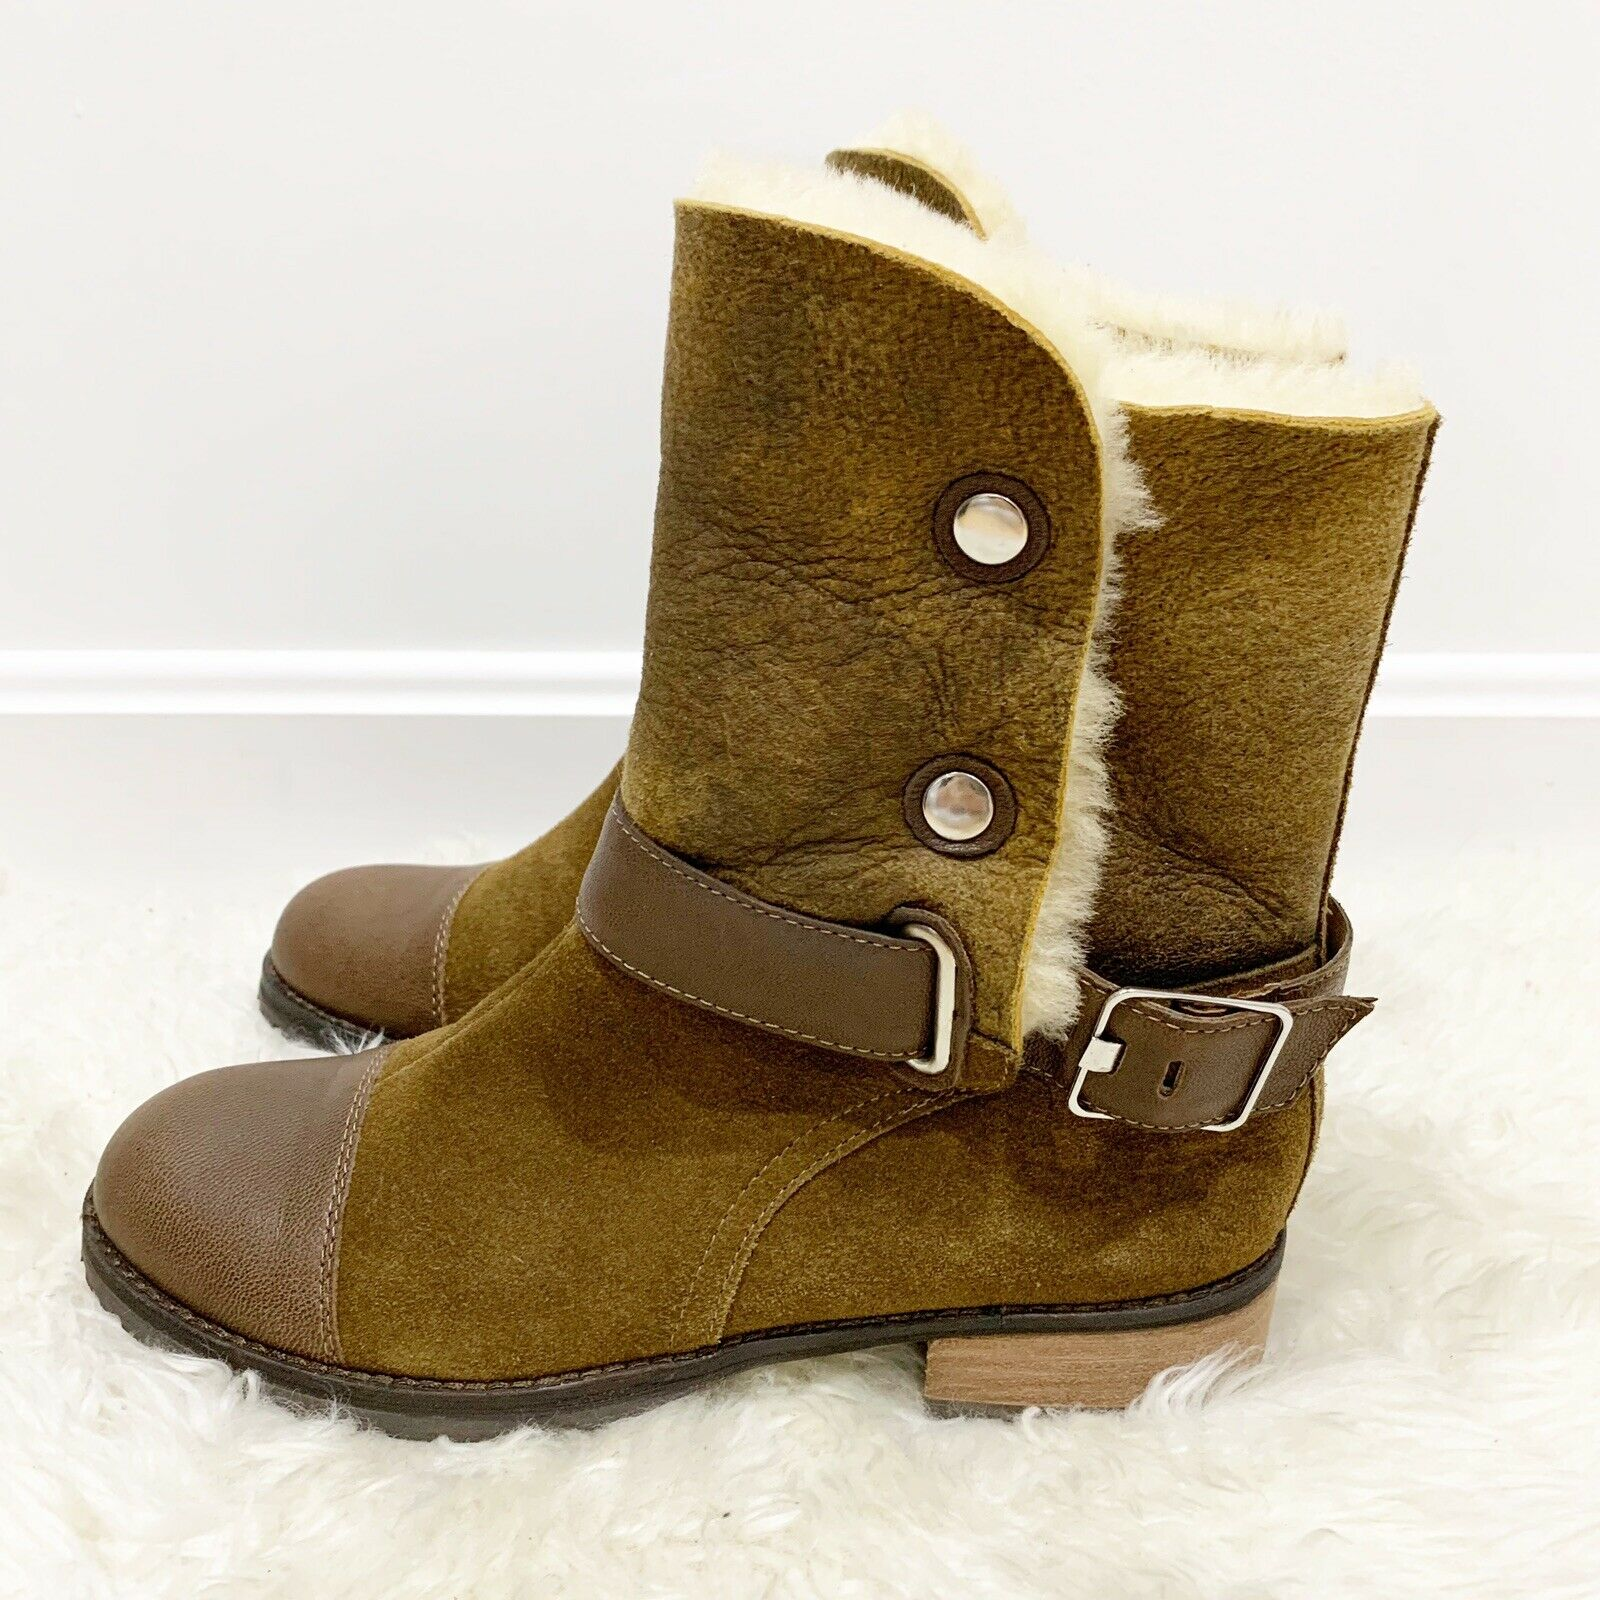 389 MATT BERNSON Tundra Brown Leather Suede Shearling Boots Sz 7 Anthropologie